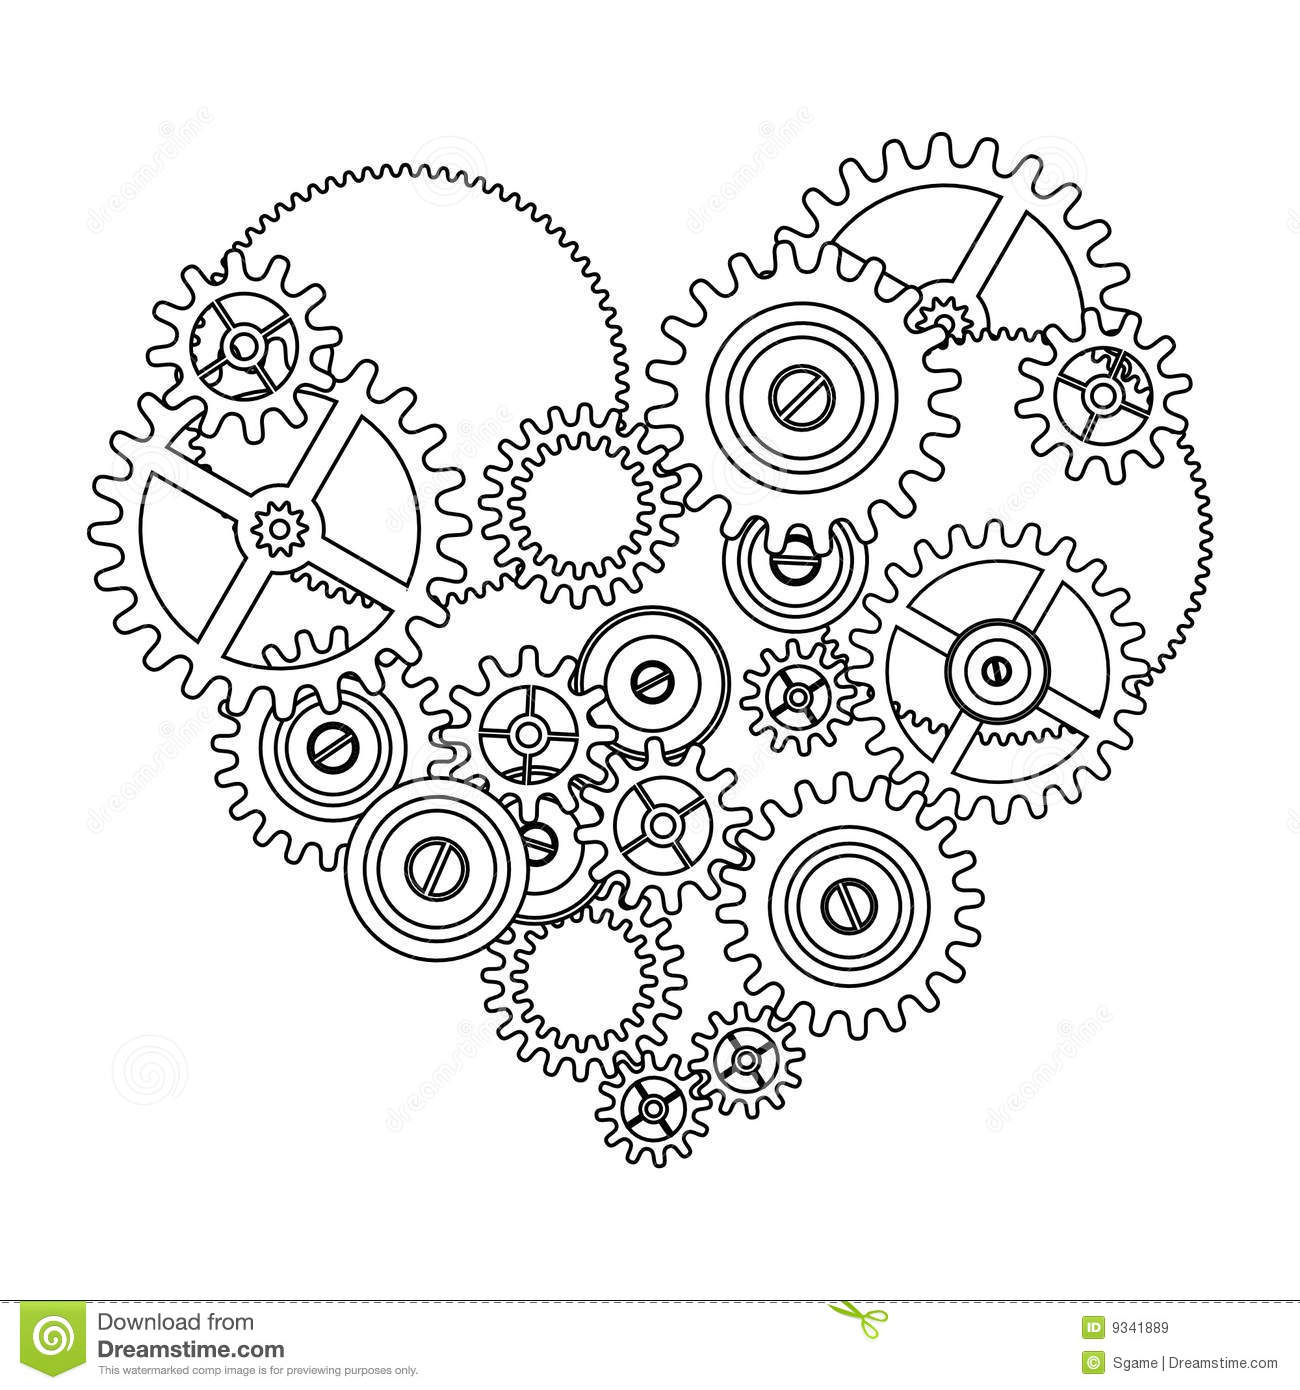 Gear Love Heart Royalty Free Stock Images - Image  9341889Gear Tattoo Drawing